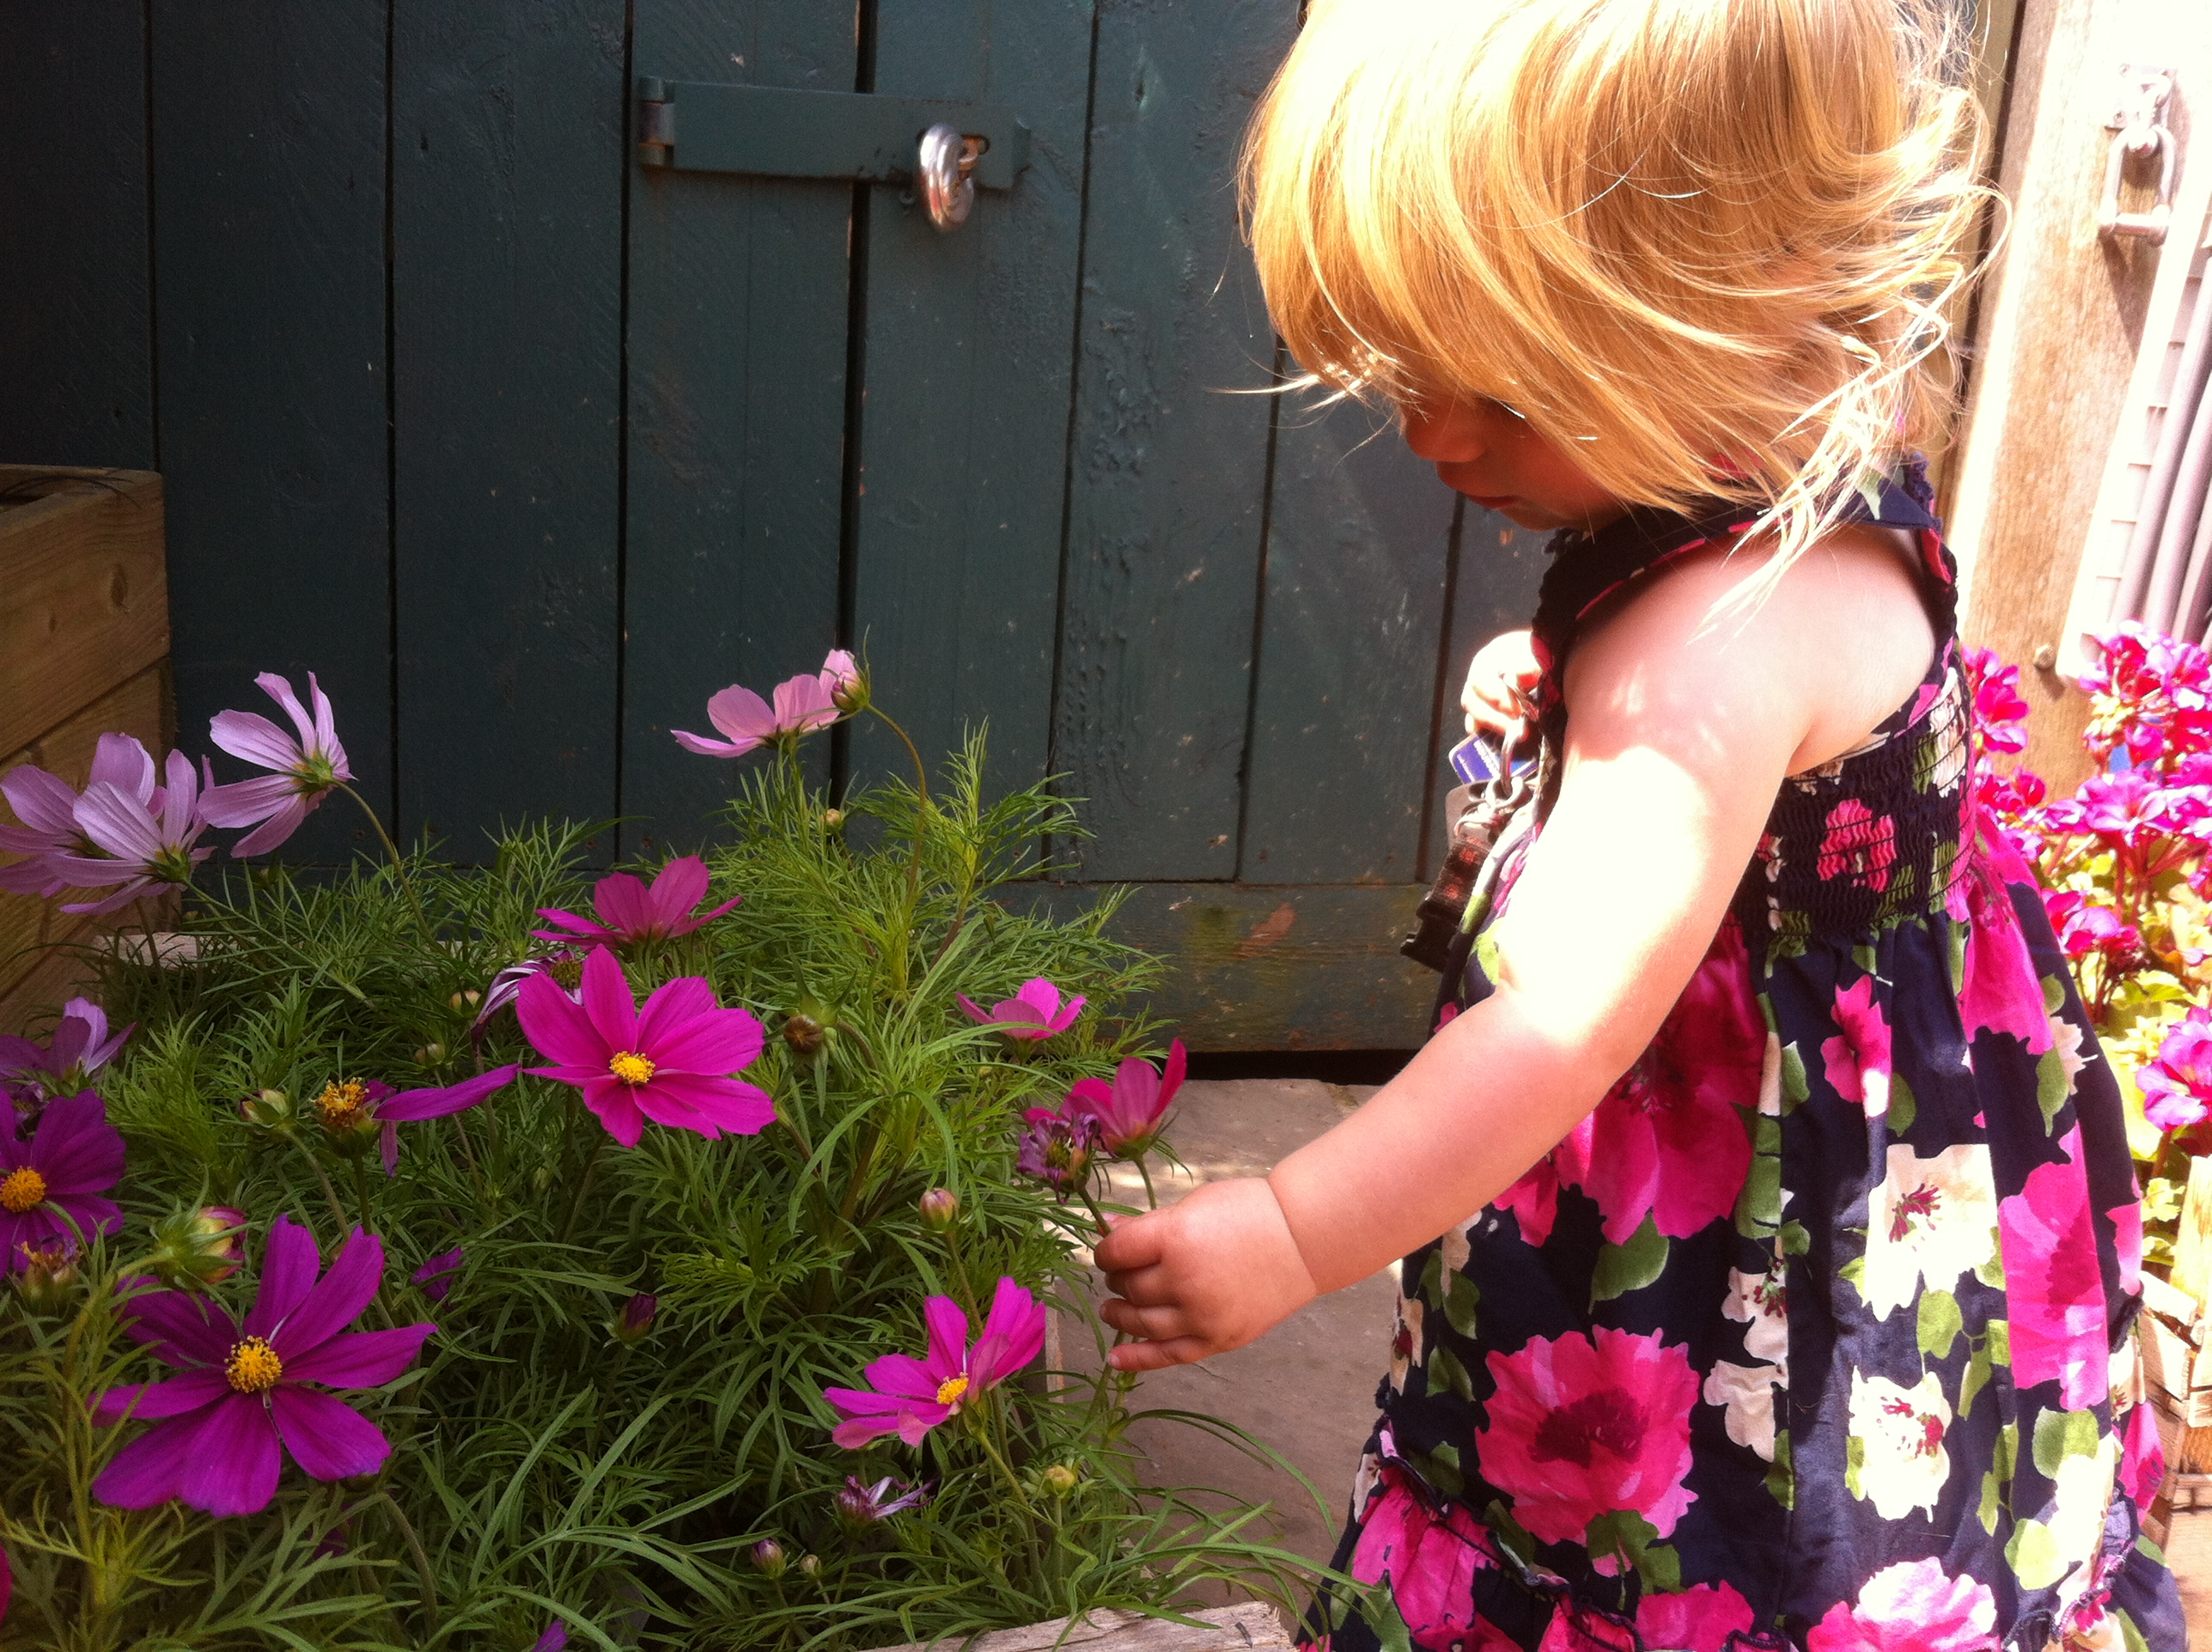 lets hope that Leah doesn't pick all the flowers before we have time to plant them!